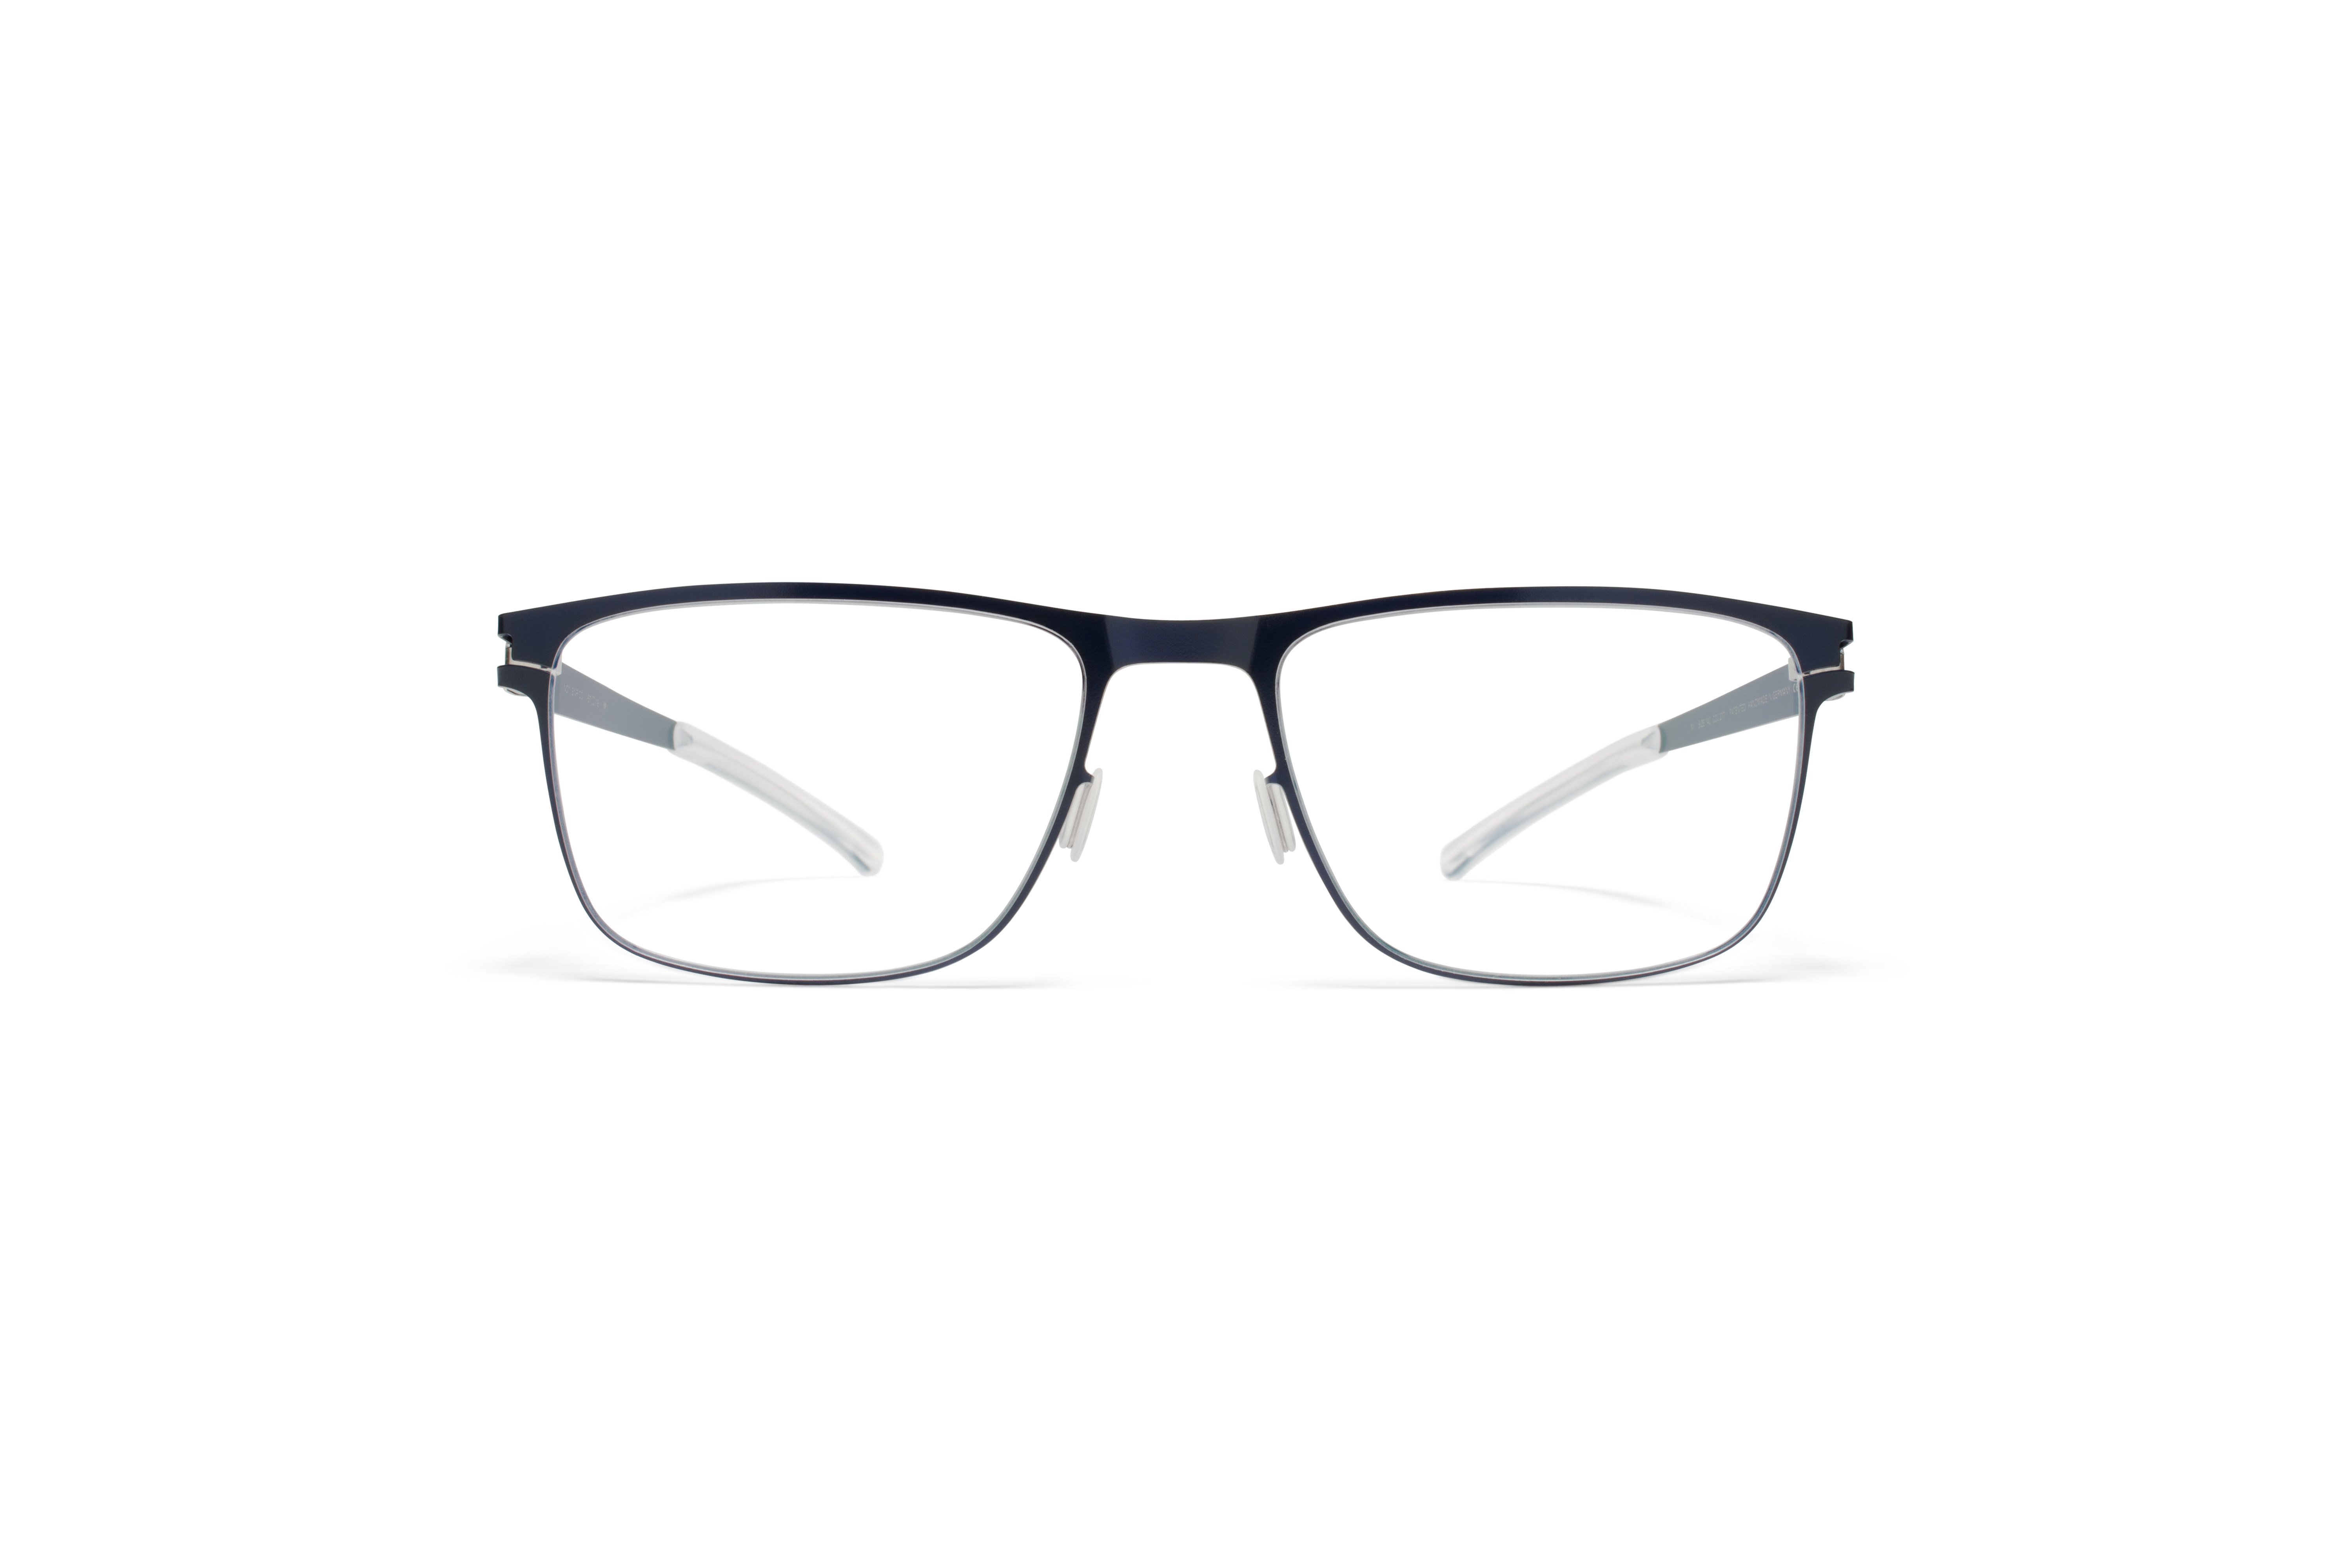 MYKITA No1 Rx Enrico Nightsky Silver Edges Clear